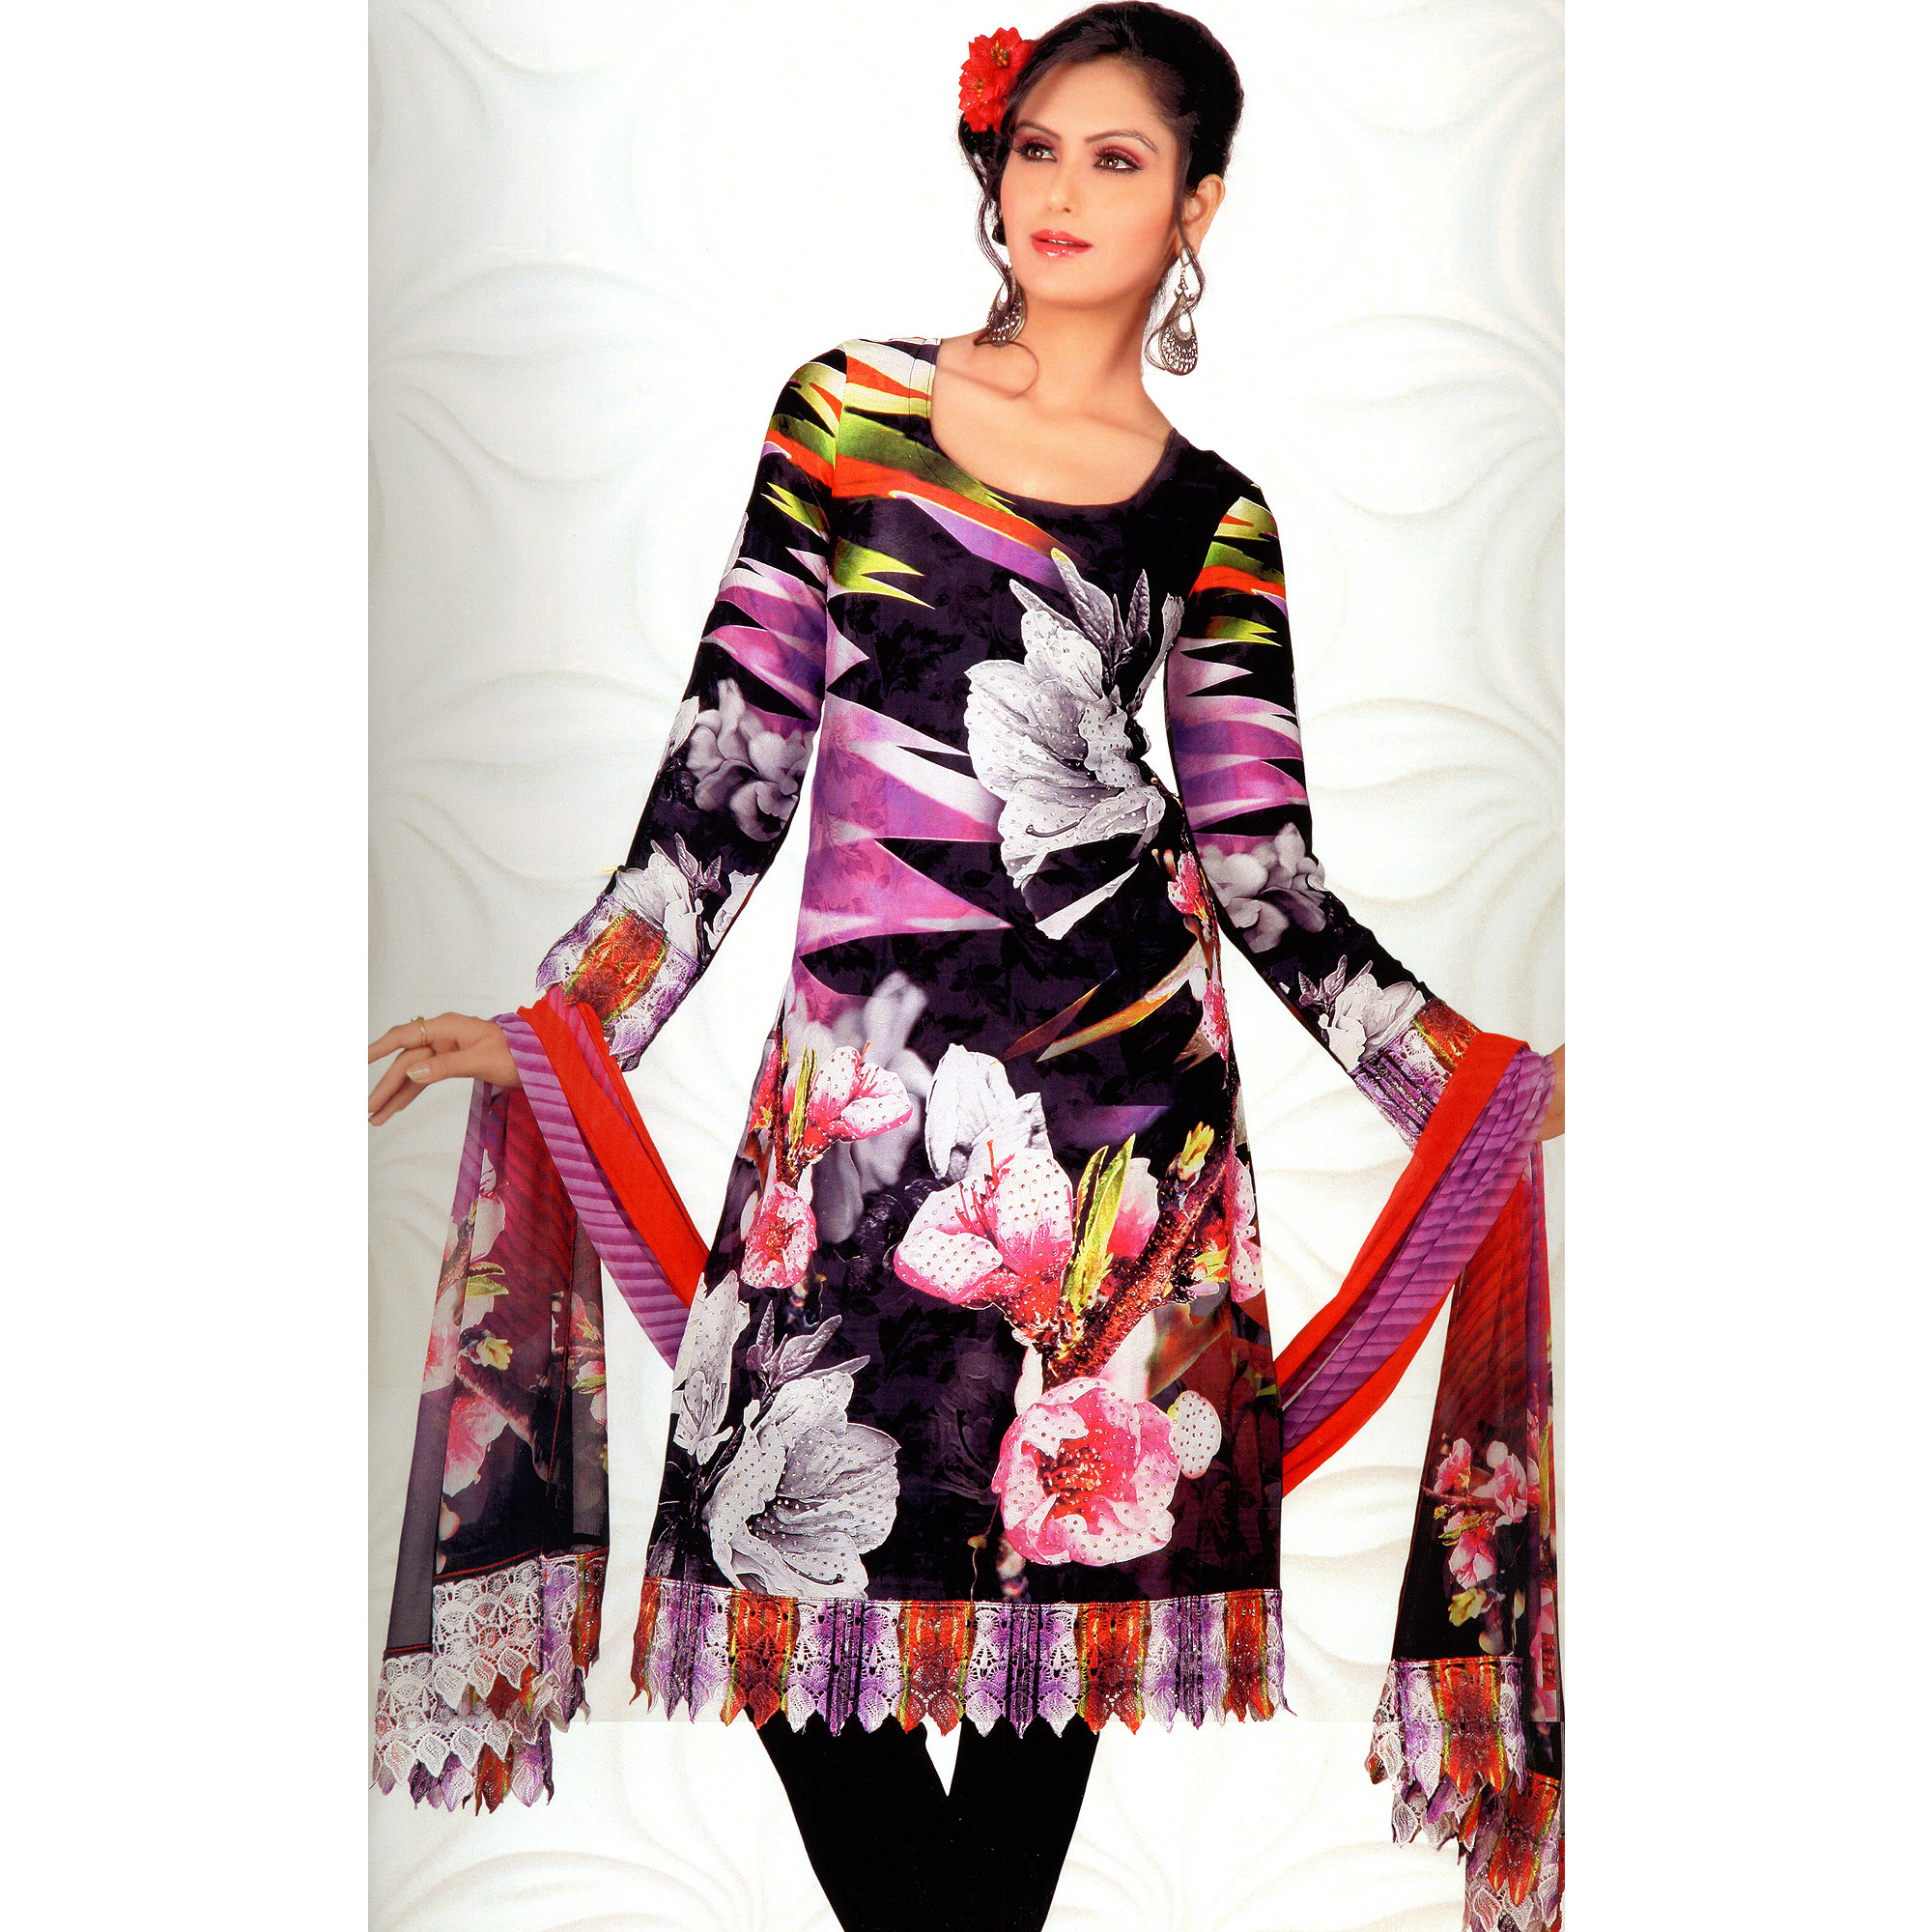 Midnight-Black Choodidaar Kameez Suit with Large Printed Flowers,Crochet Border and Mokaish Work